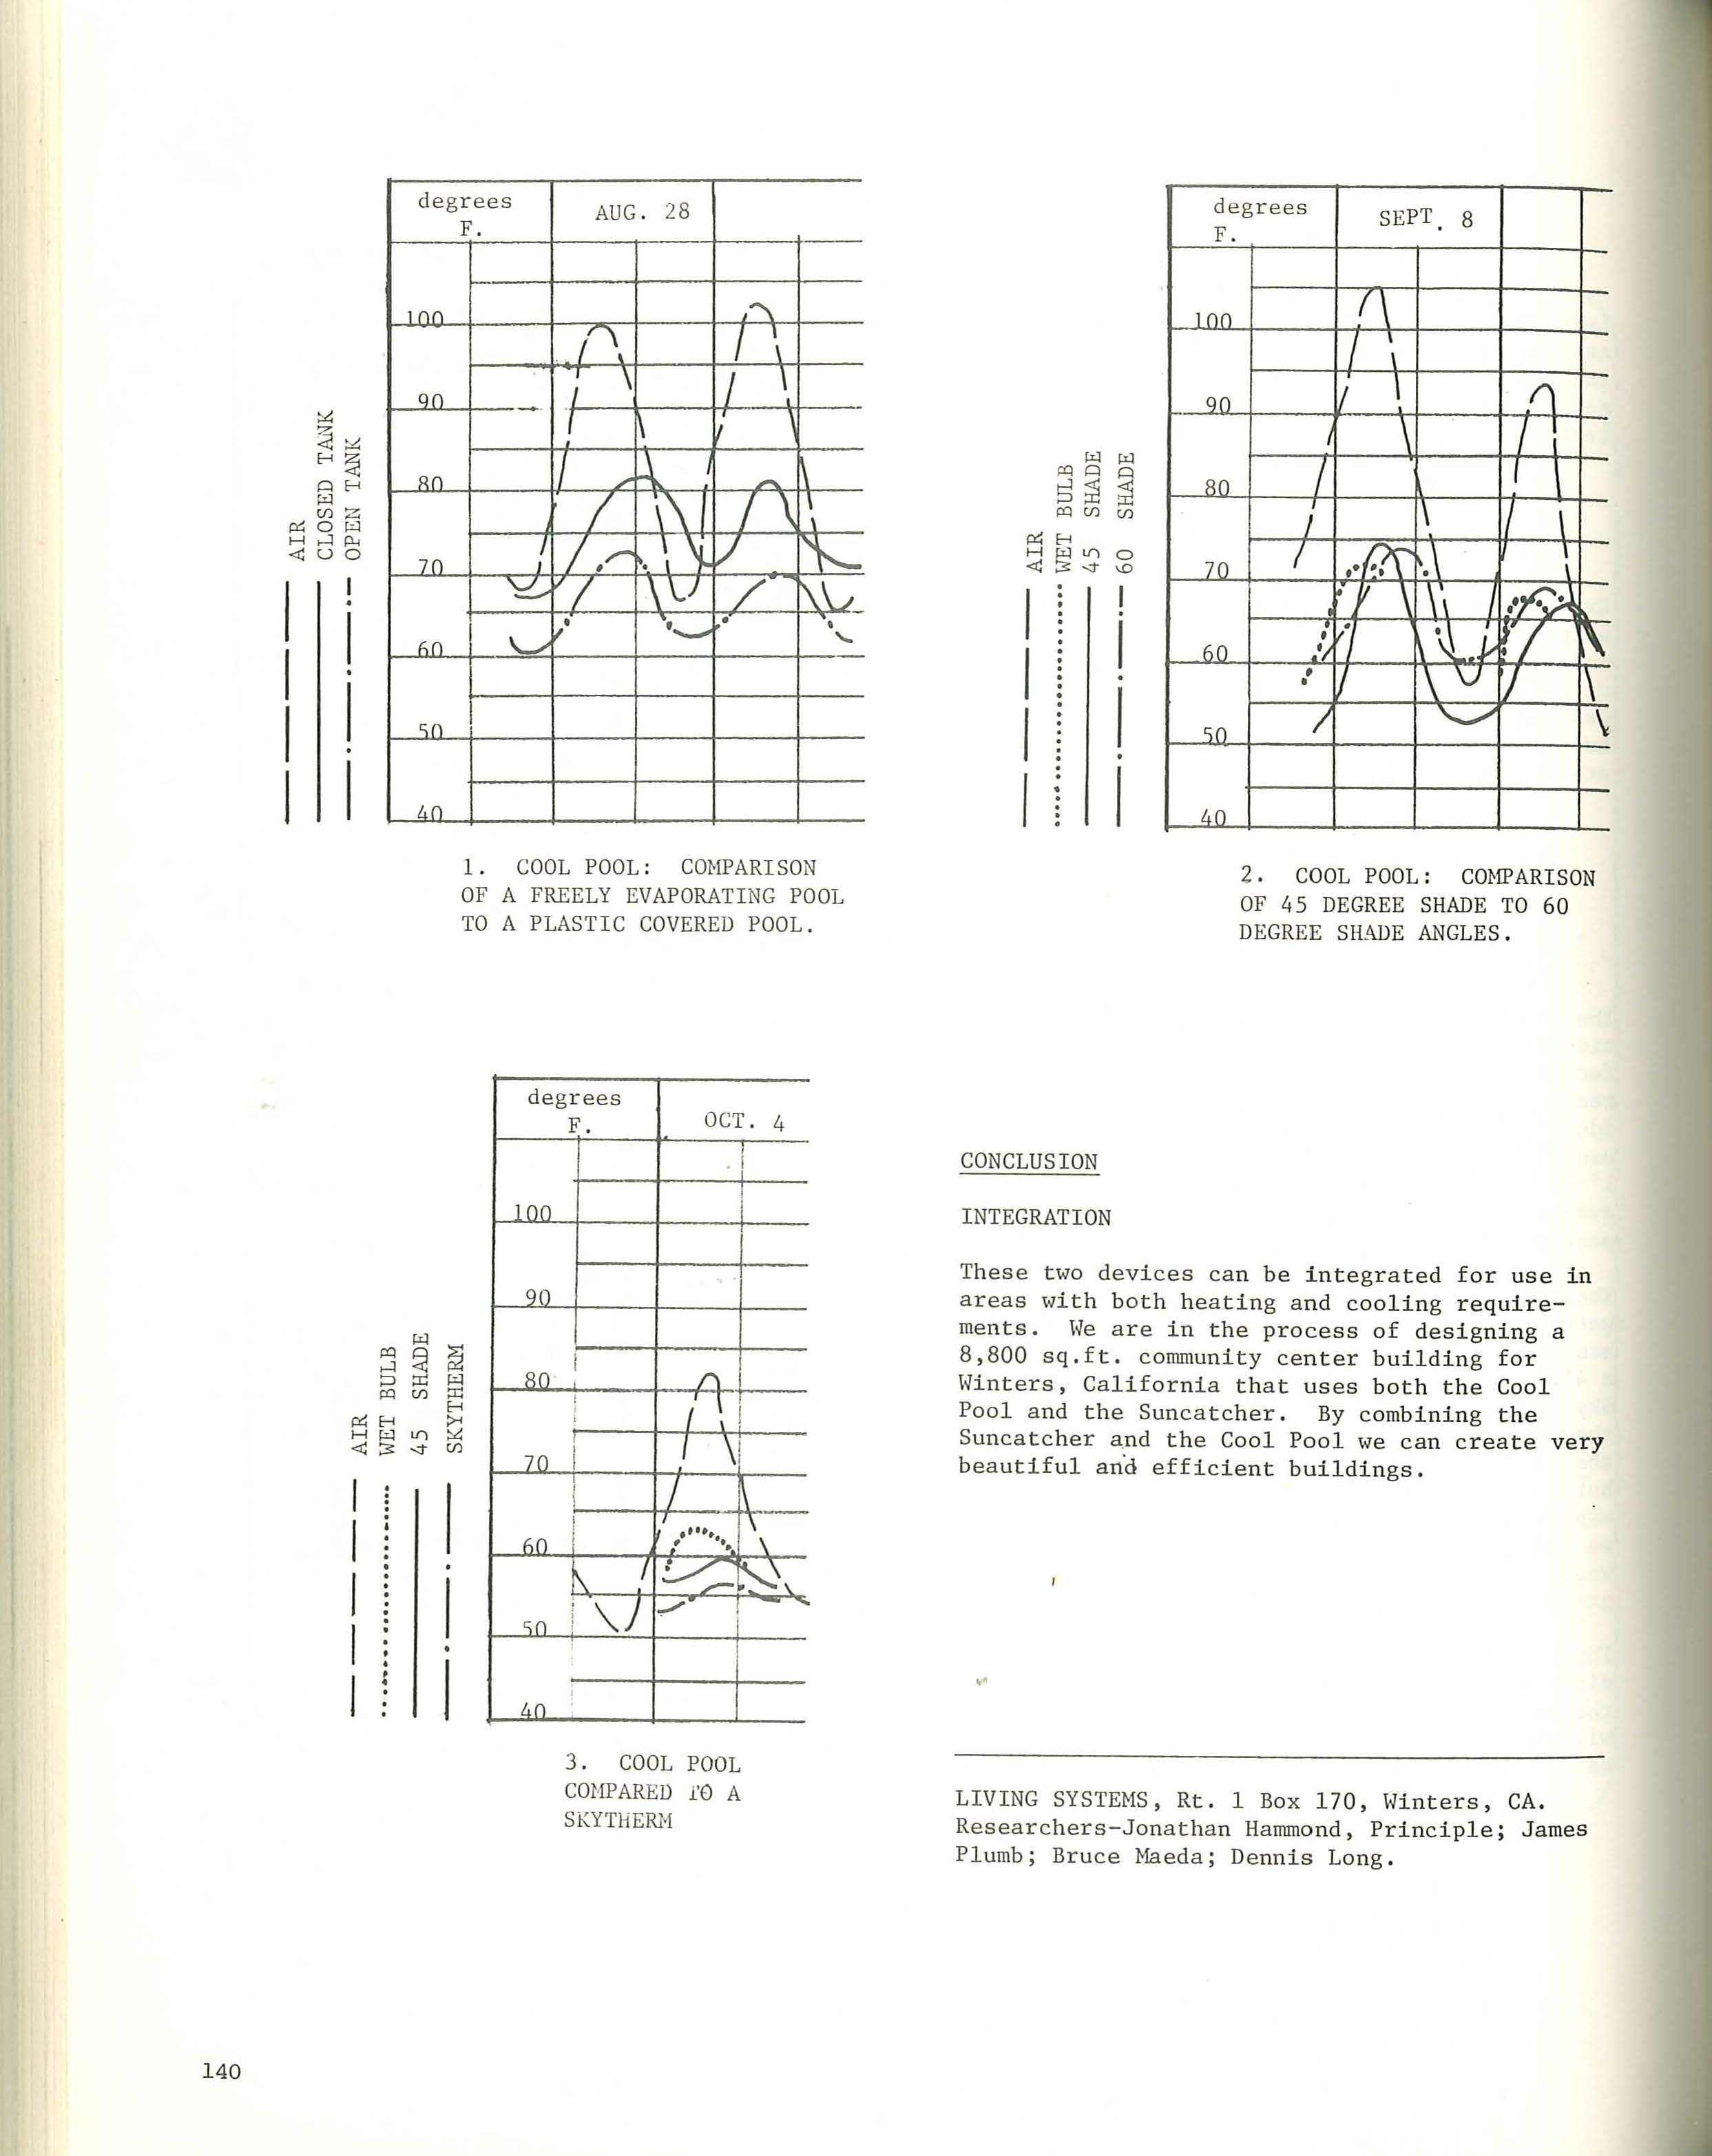 passive solar_proceedings of the 2nd national passive solar conference_1978_Page_6.jpg